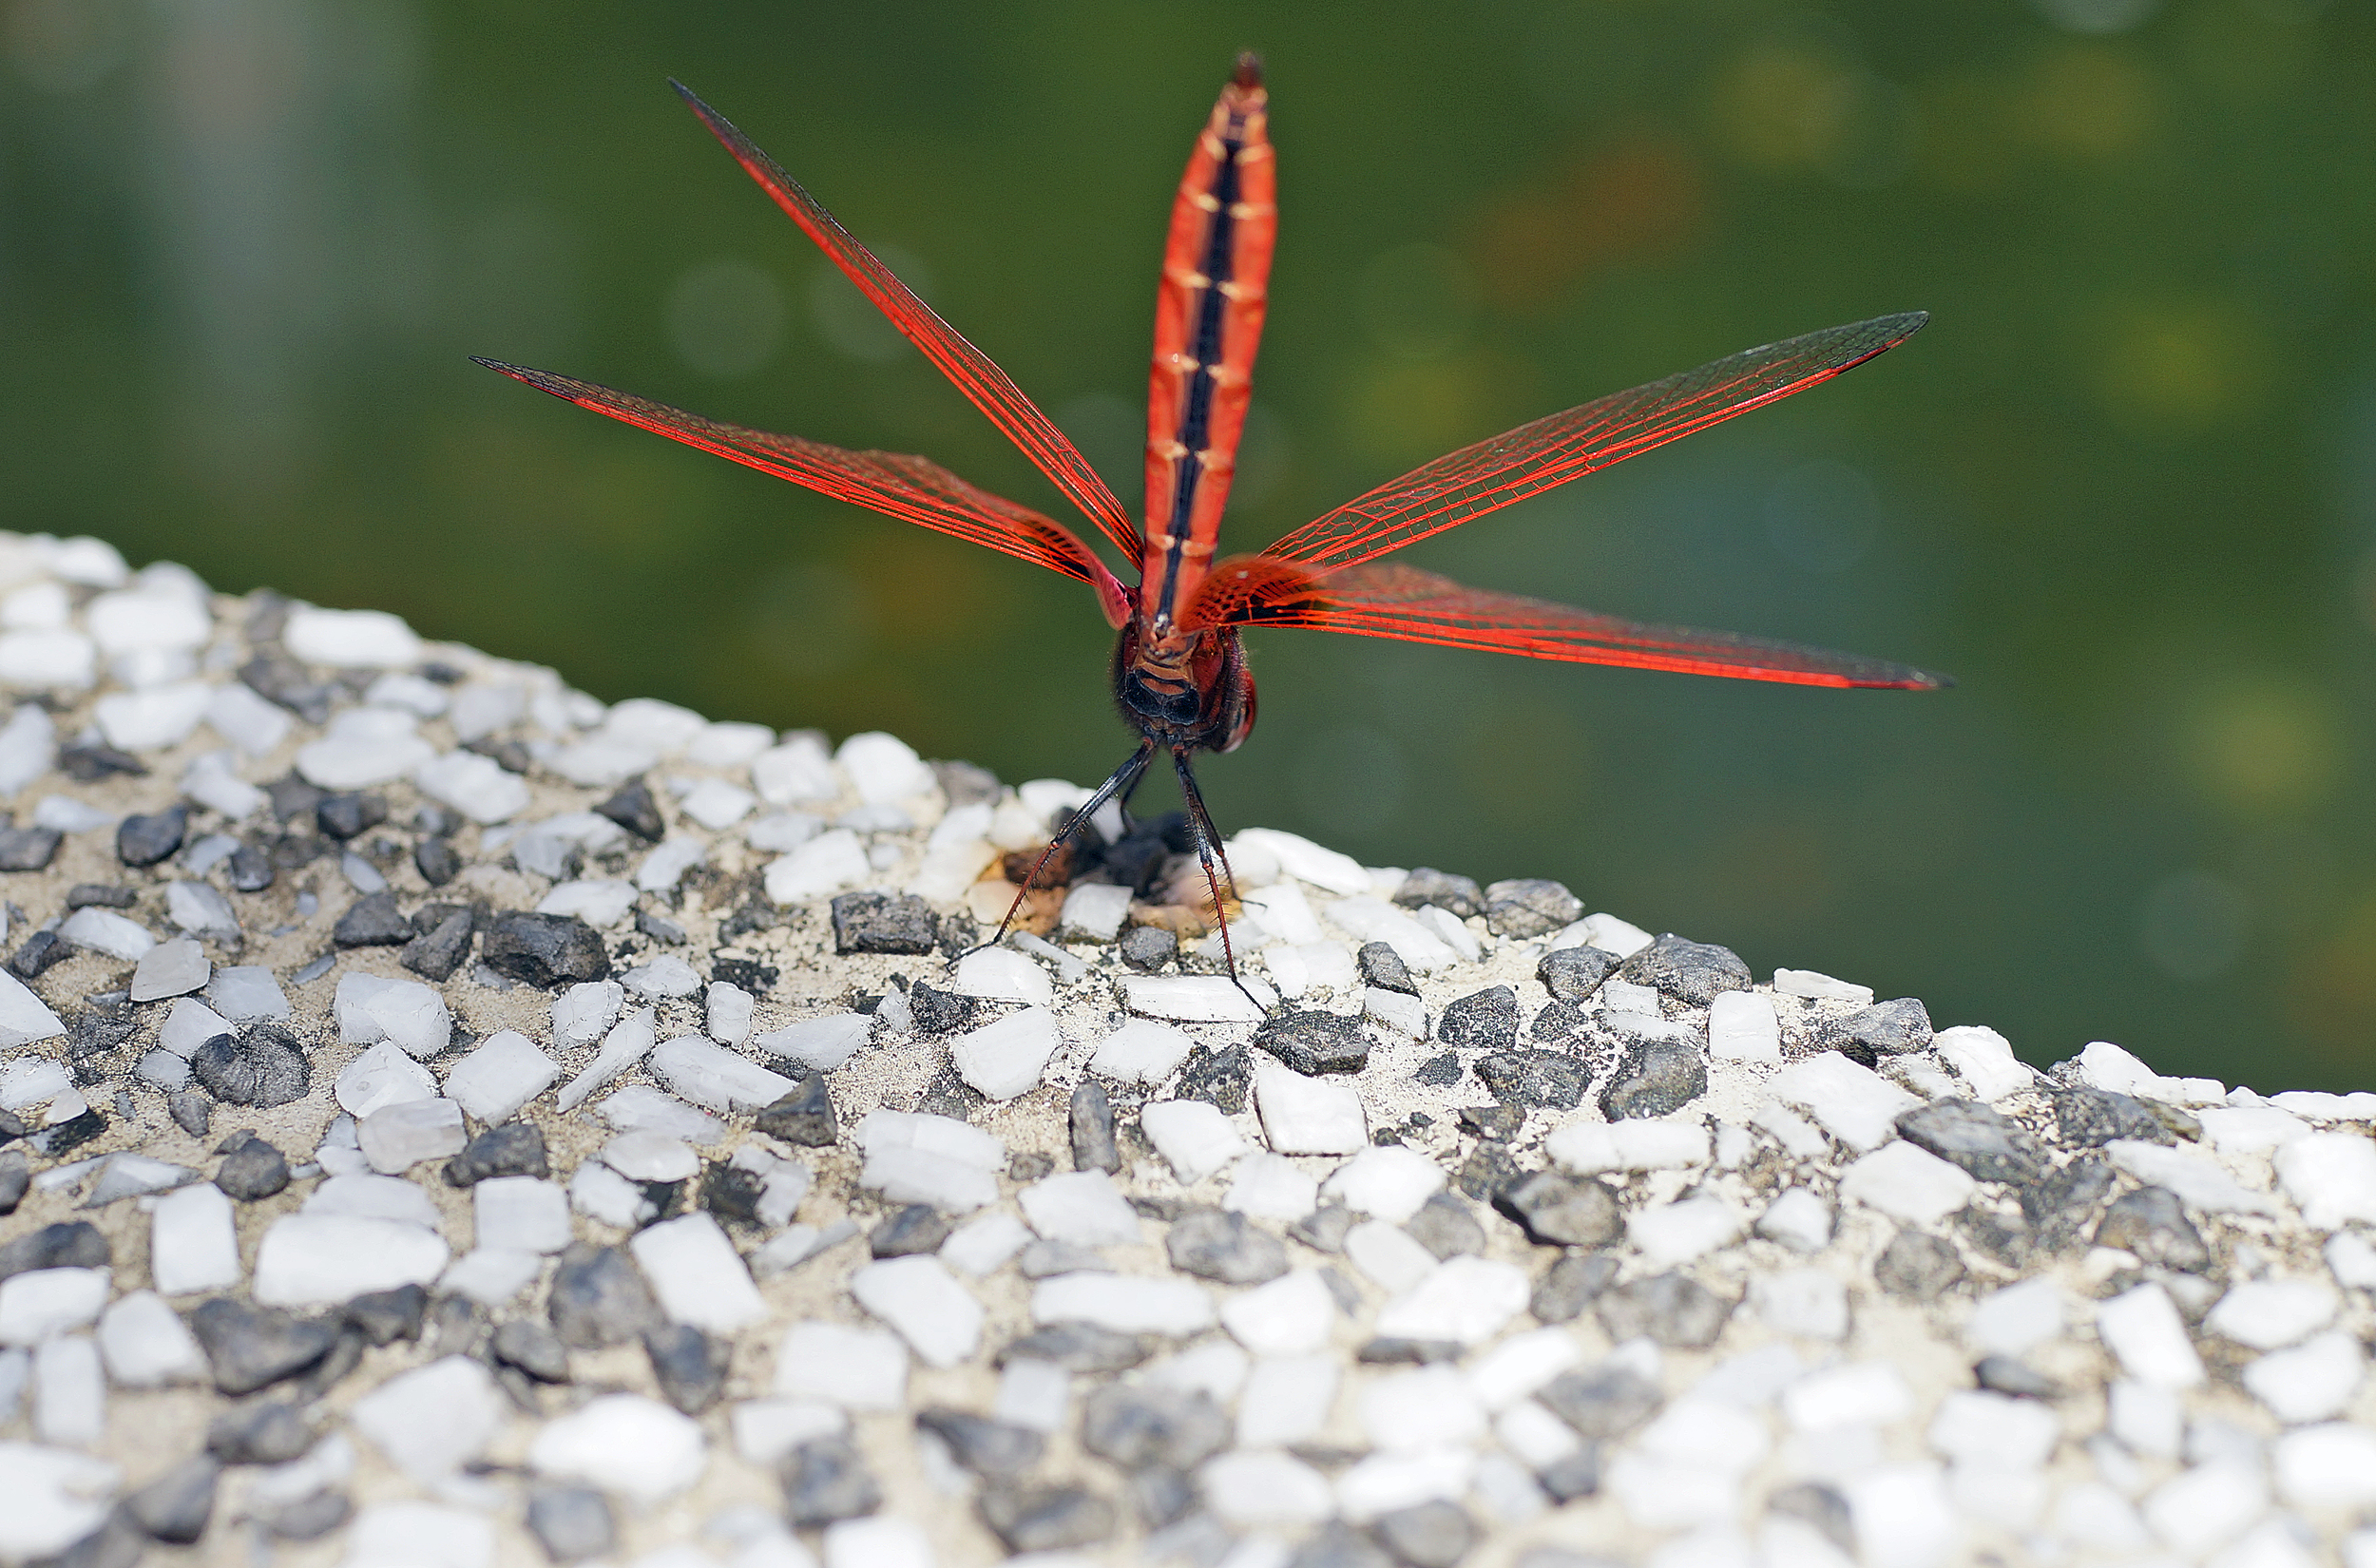 This is my first ever shot of a dragonfly - they are even more elusive and hard to pin down than a butterfly.